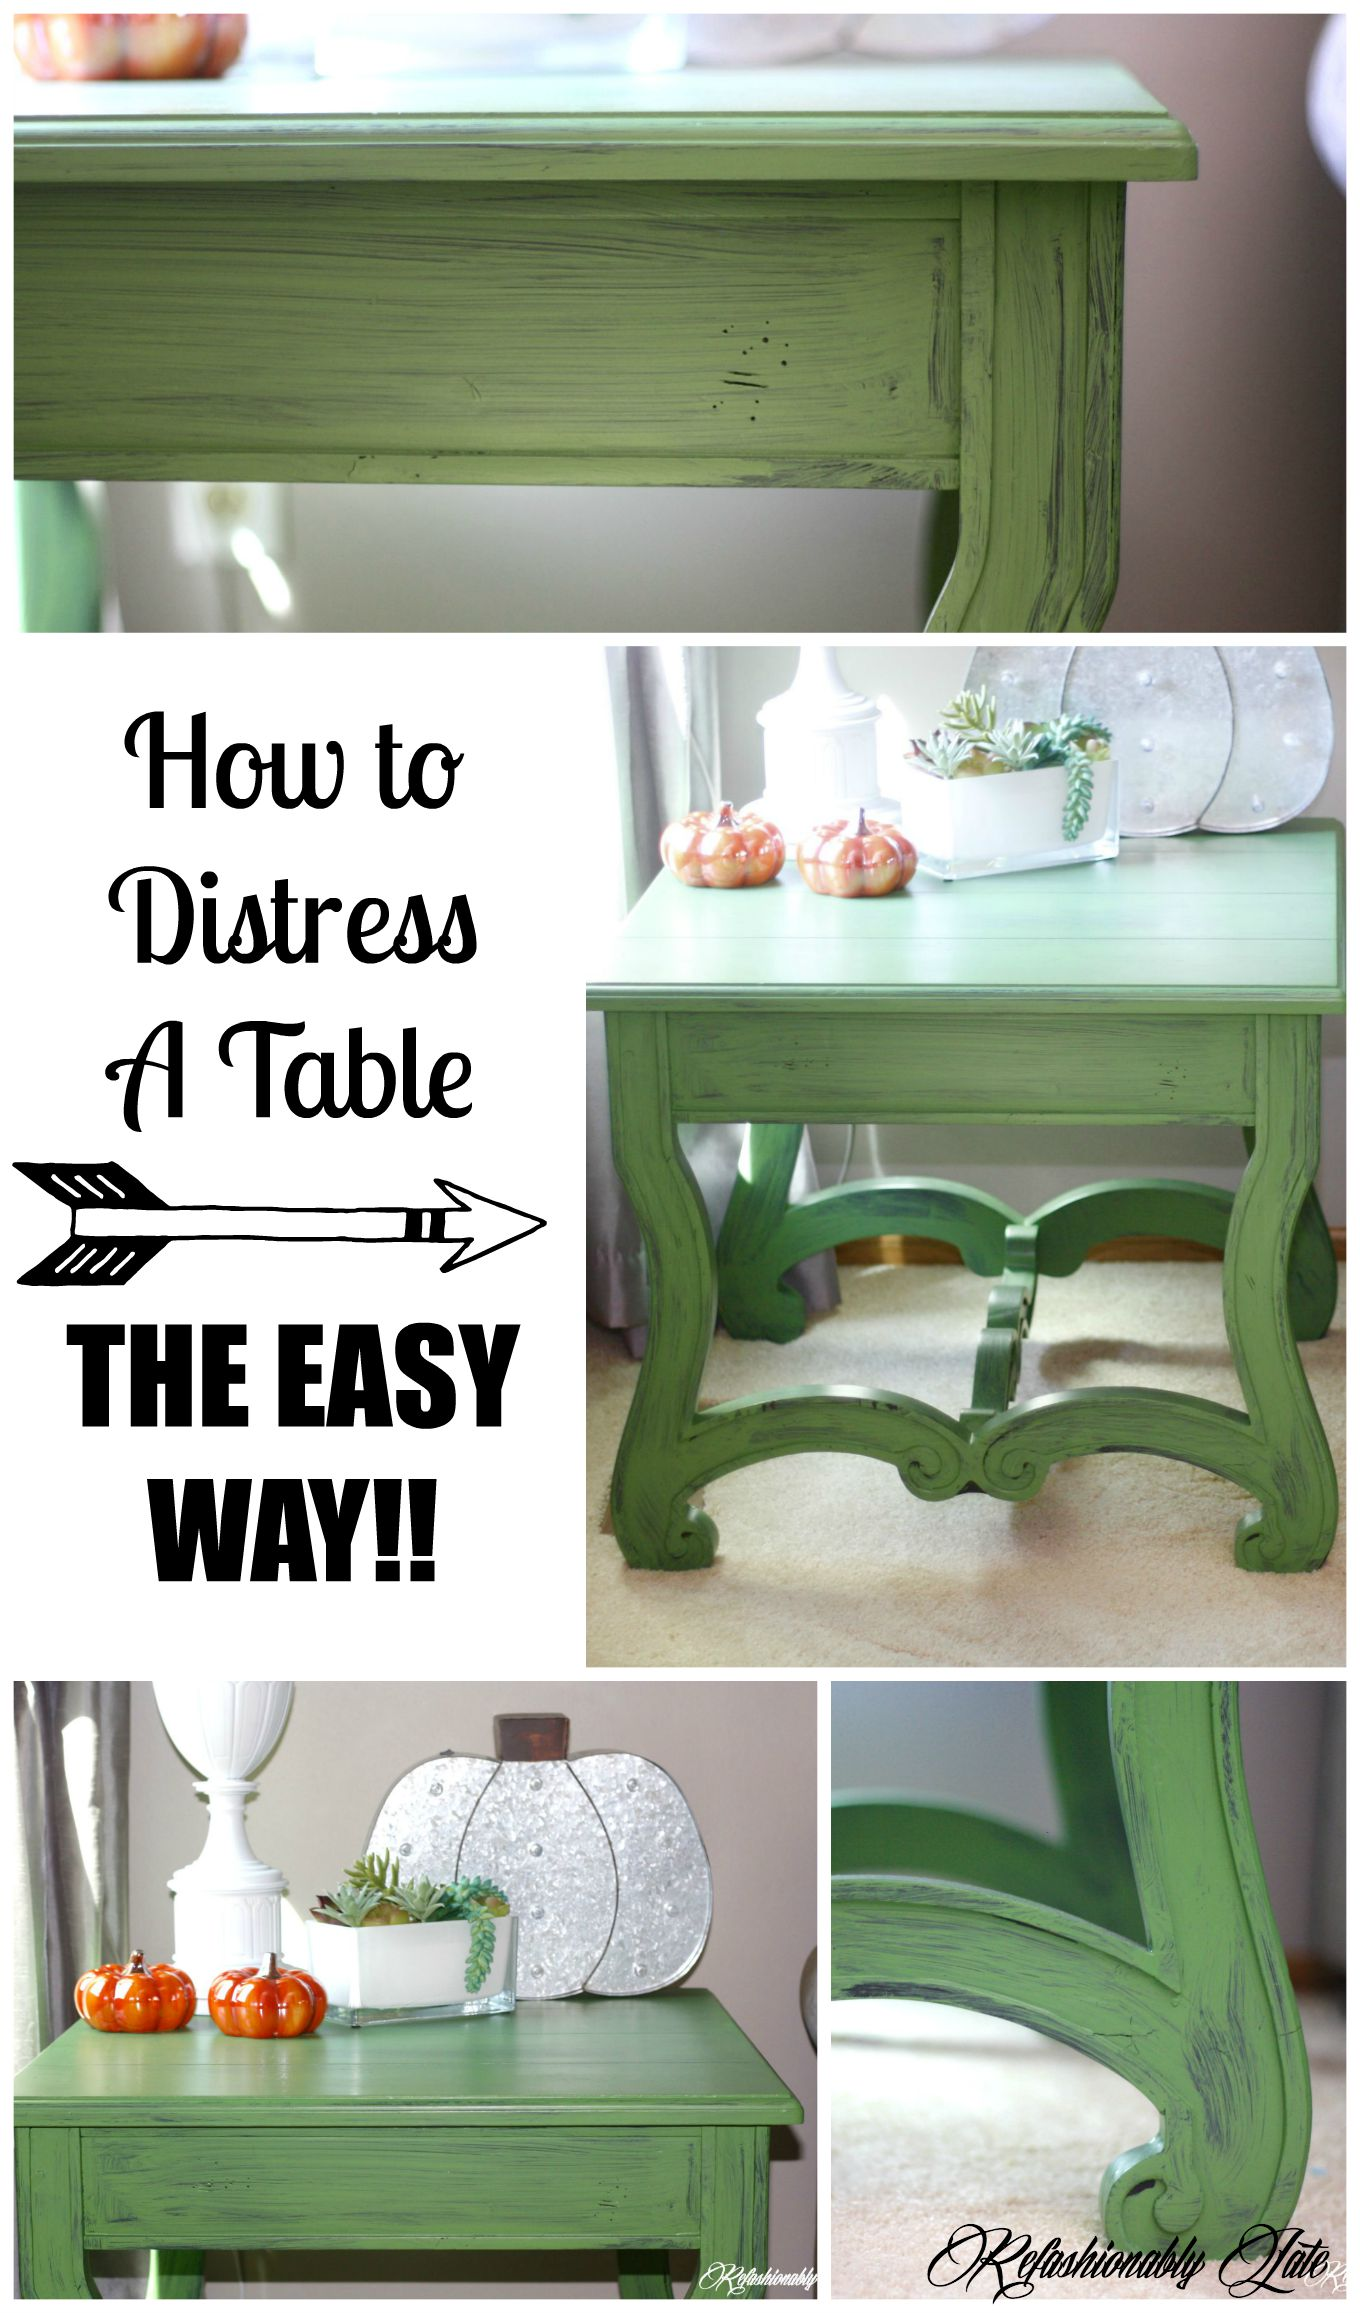 How to Distress A Table, The Easy Way! No Sanding Required!